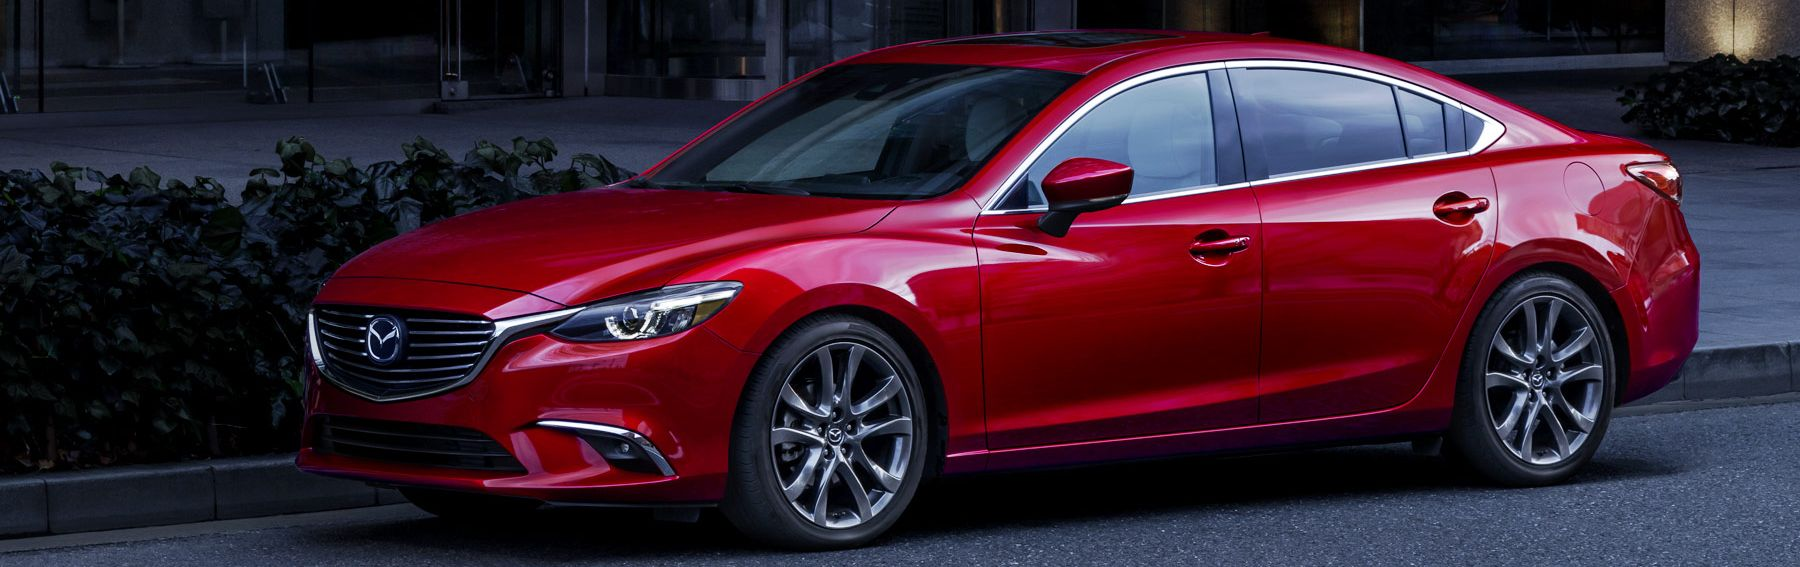 2017 Mazda6 for Sale near Pasadena, TX - Mazda of Clear Lake